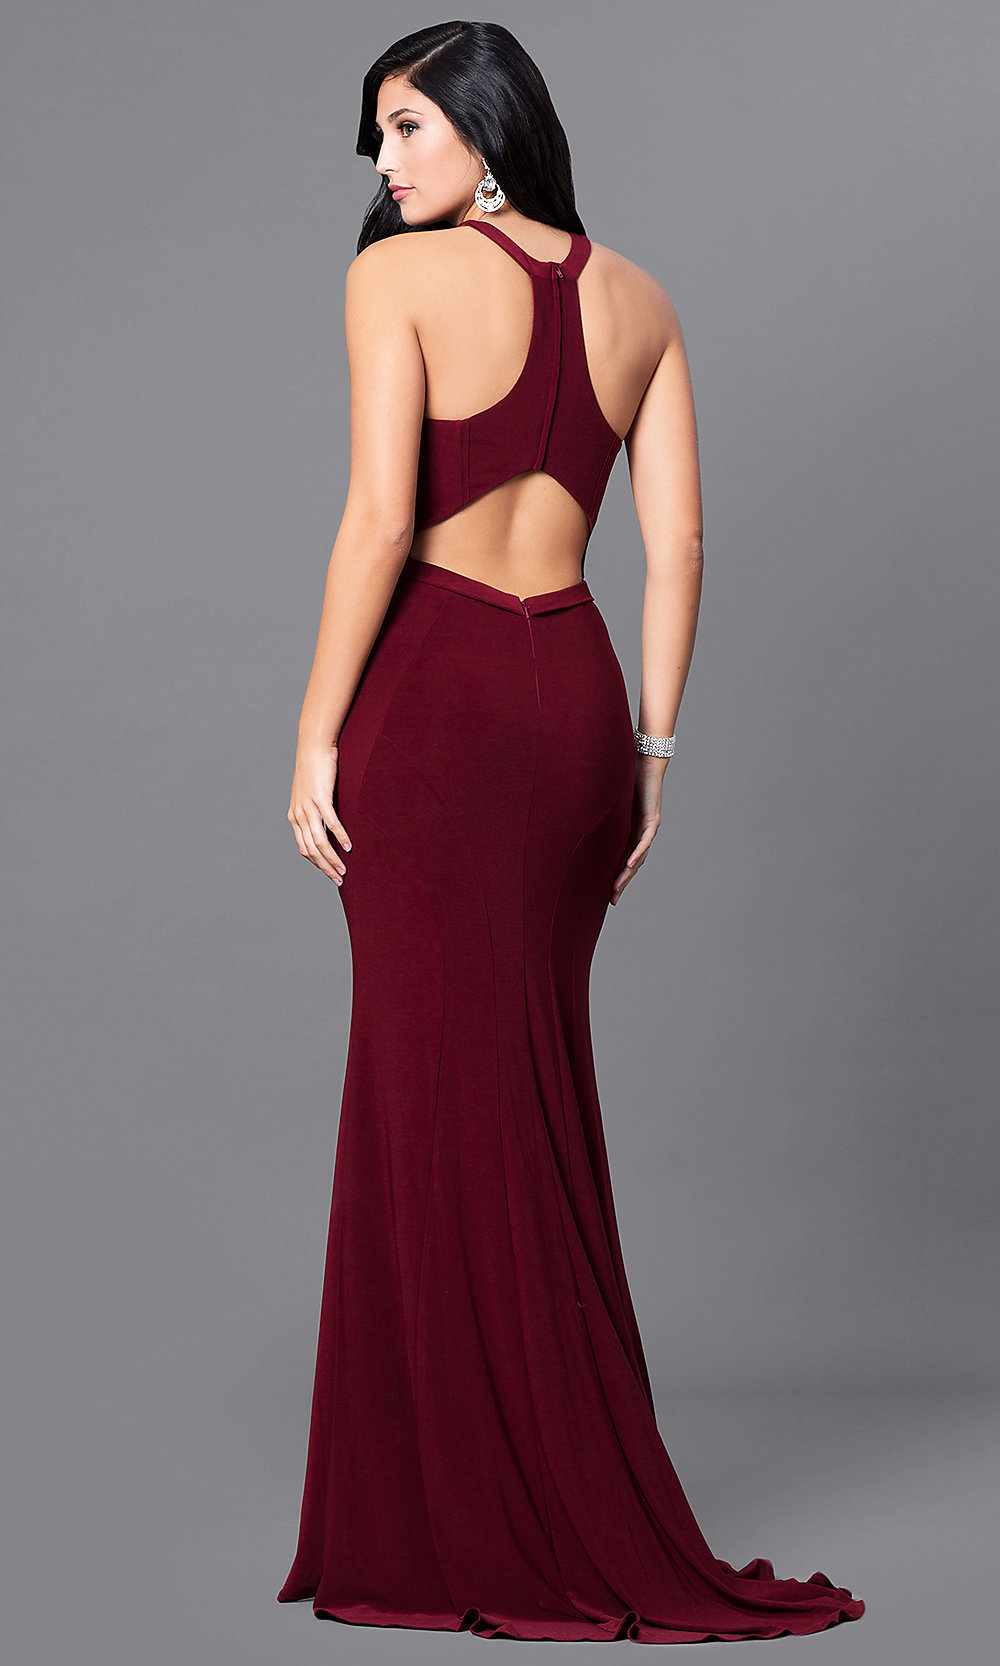 0658512d5fa Long Wine Red Prom Dress with Midriff Cut Out-PromGirl